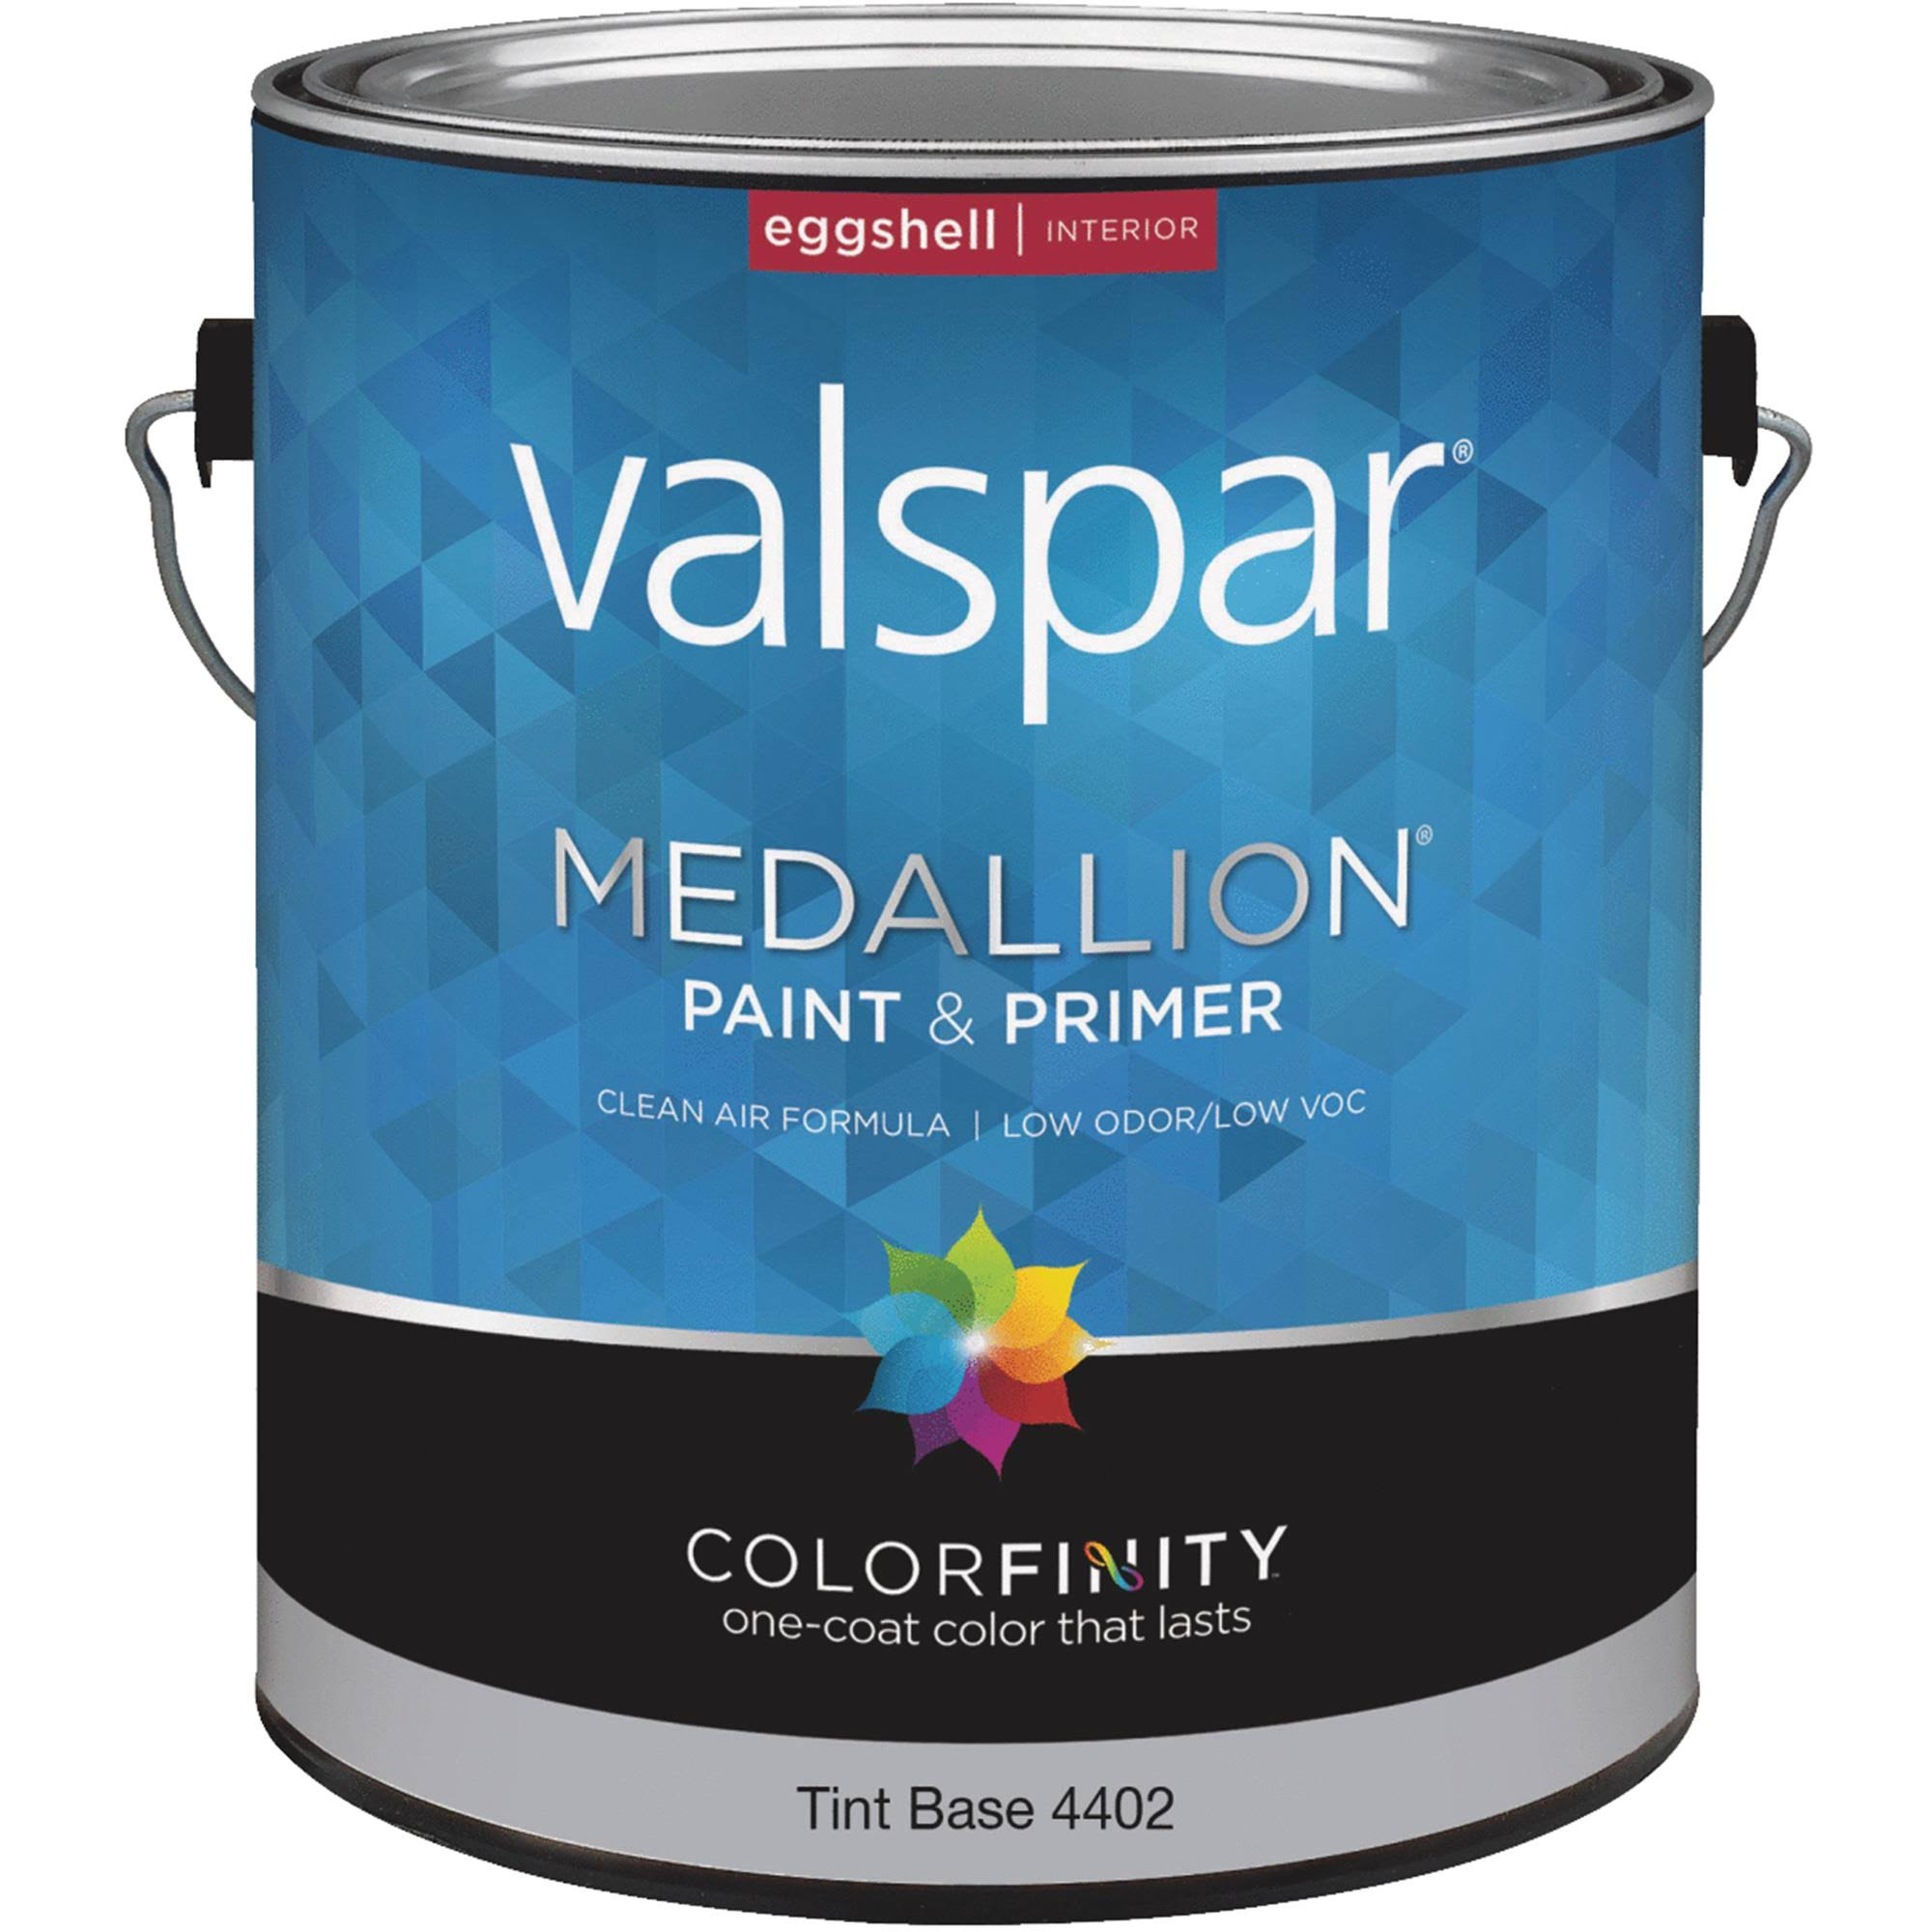 Valspar 027.0004402.007 Interior Eggshell Latex Paint, Tint Base